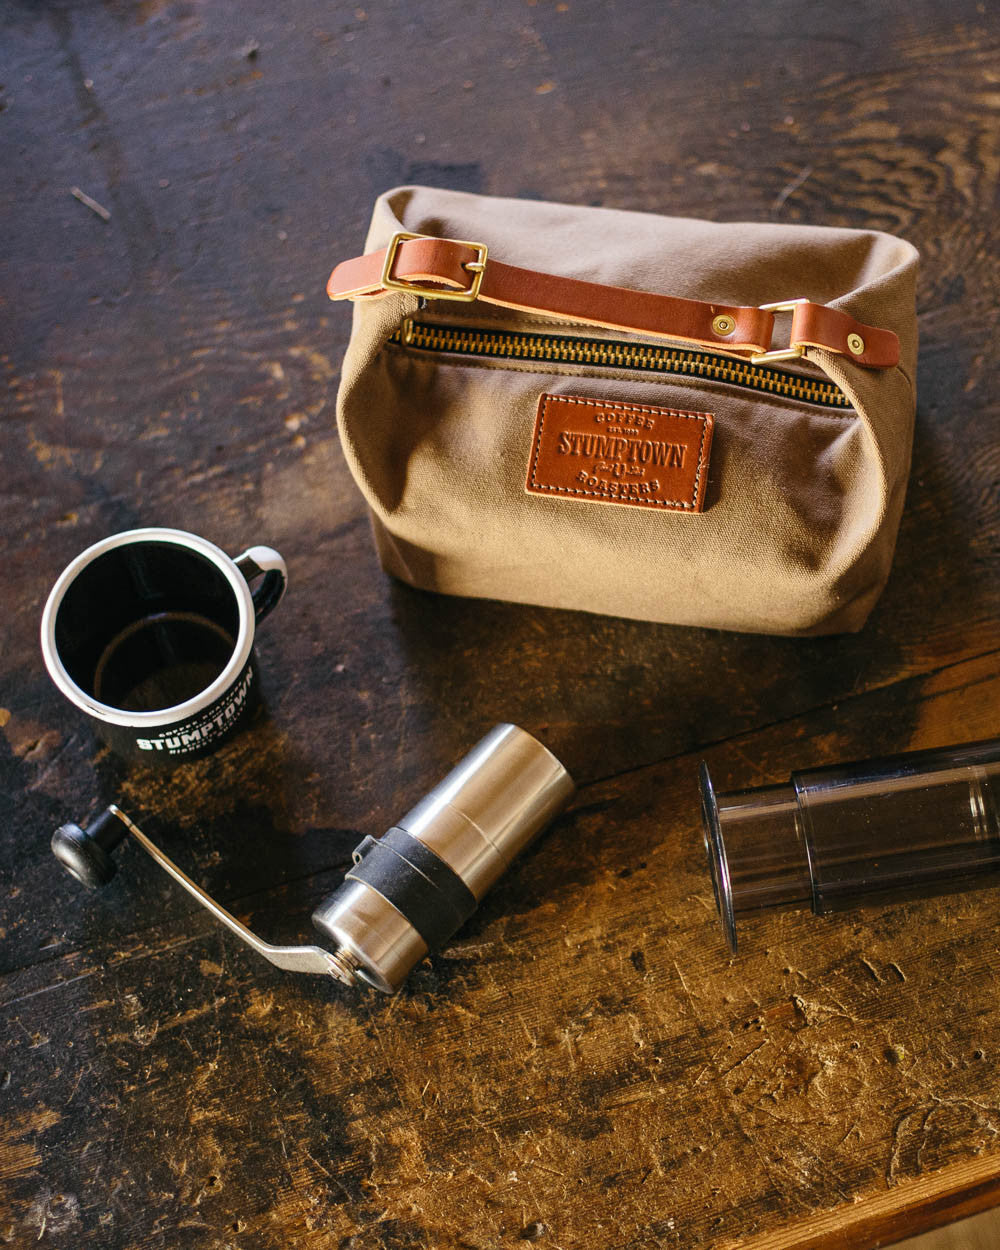 Stumptown traveling coffee bag